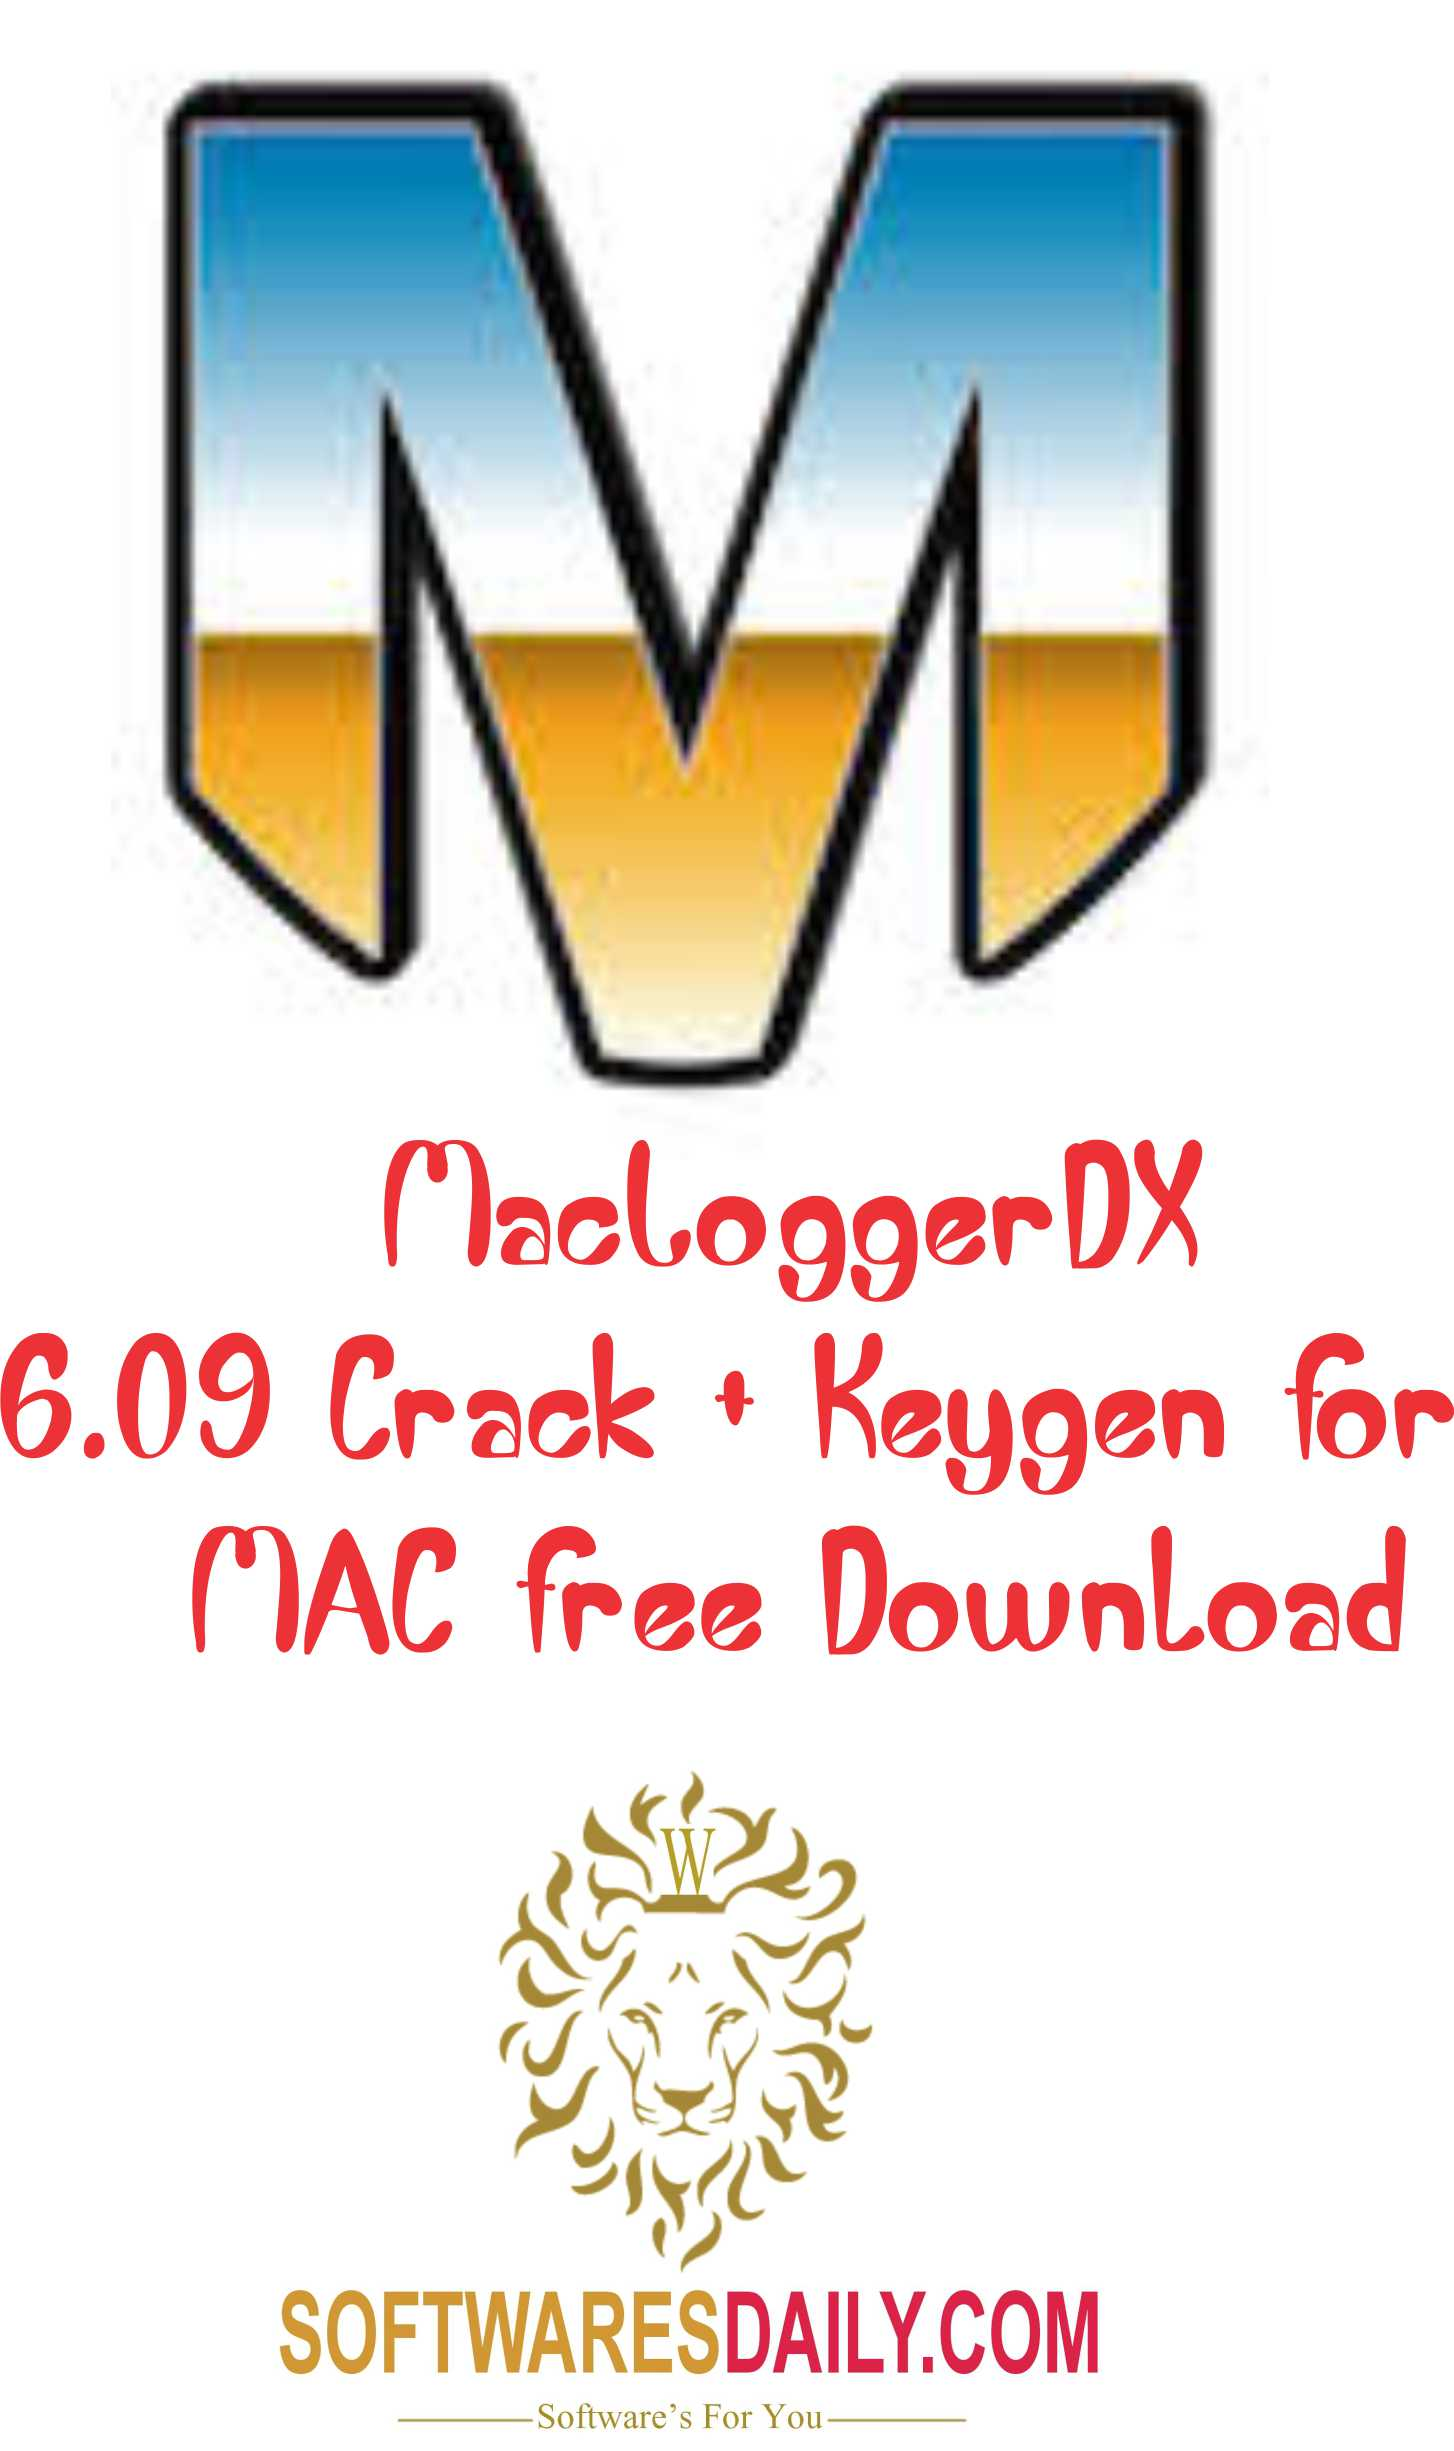 MacLoggerDX 6.09 Crack + Keygen For MAC Free Download